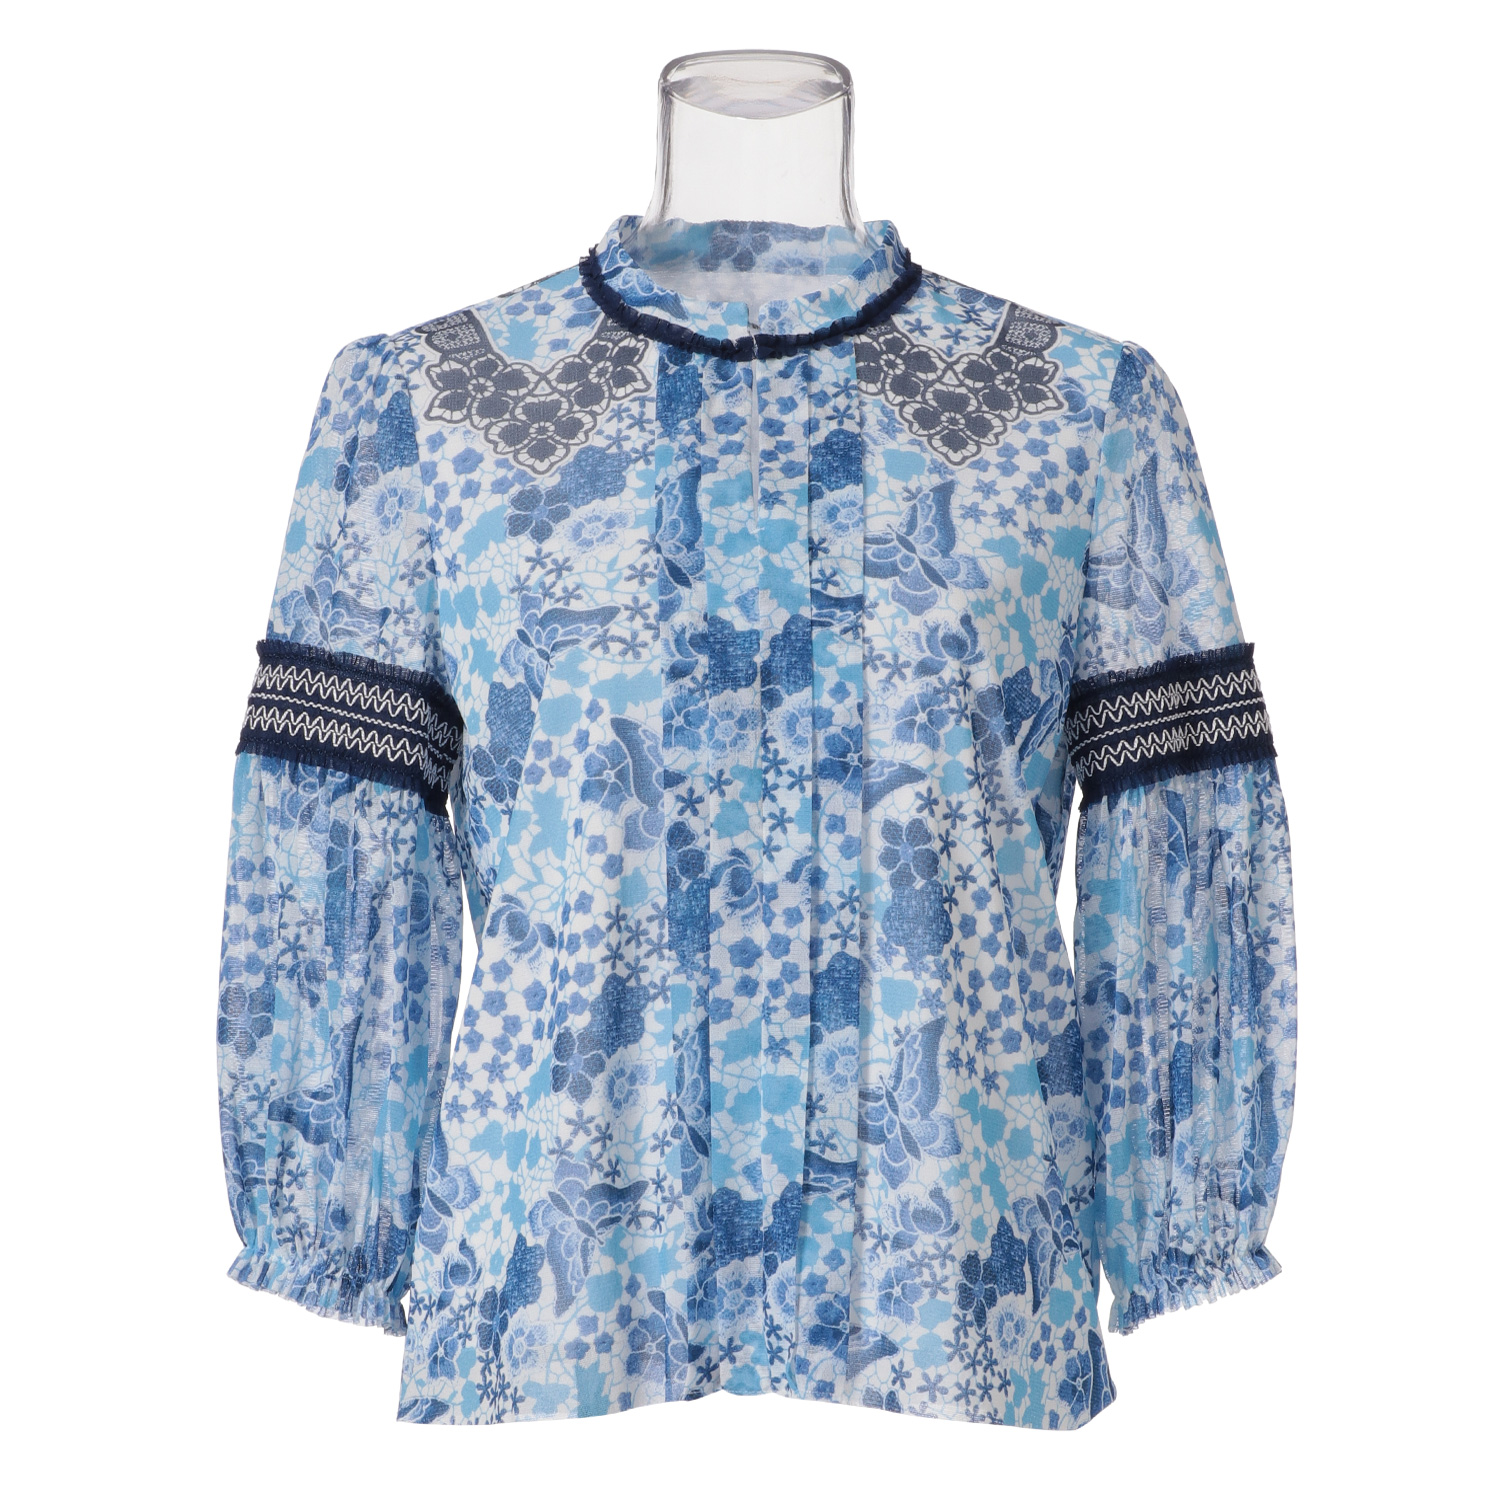 VIVIENNE TAMのBUTTERFLY LACE PRINTED ON NETTING BLOUSE